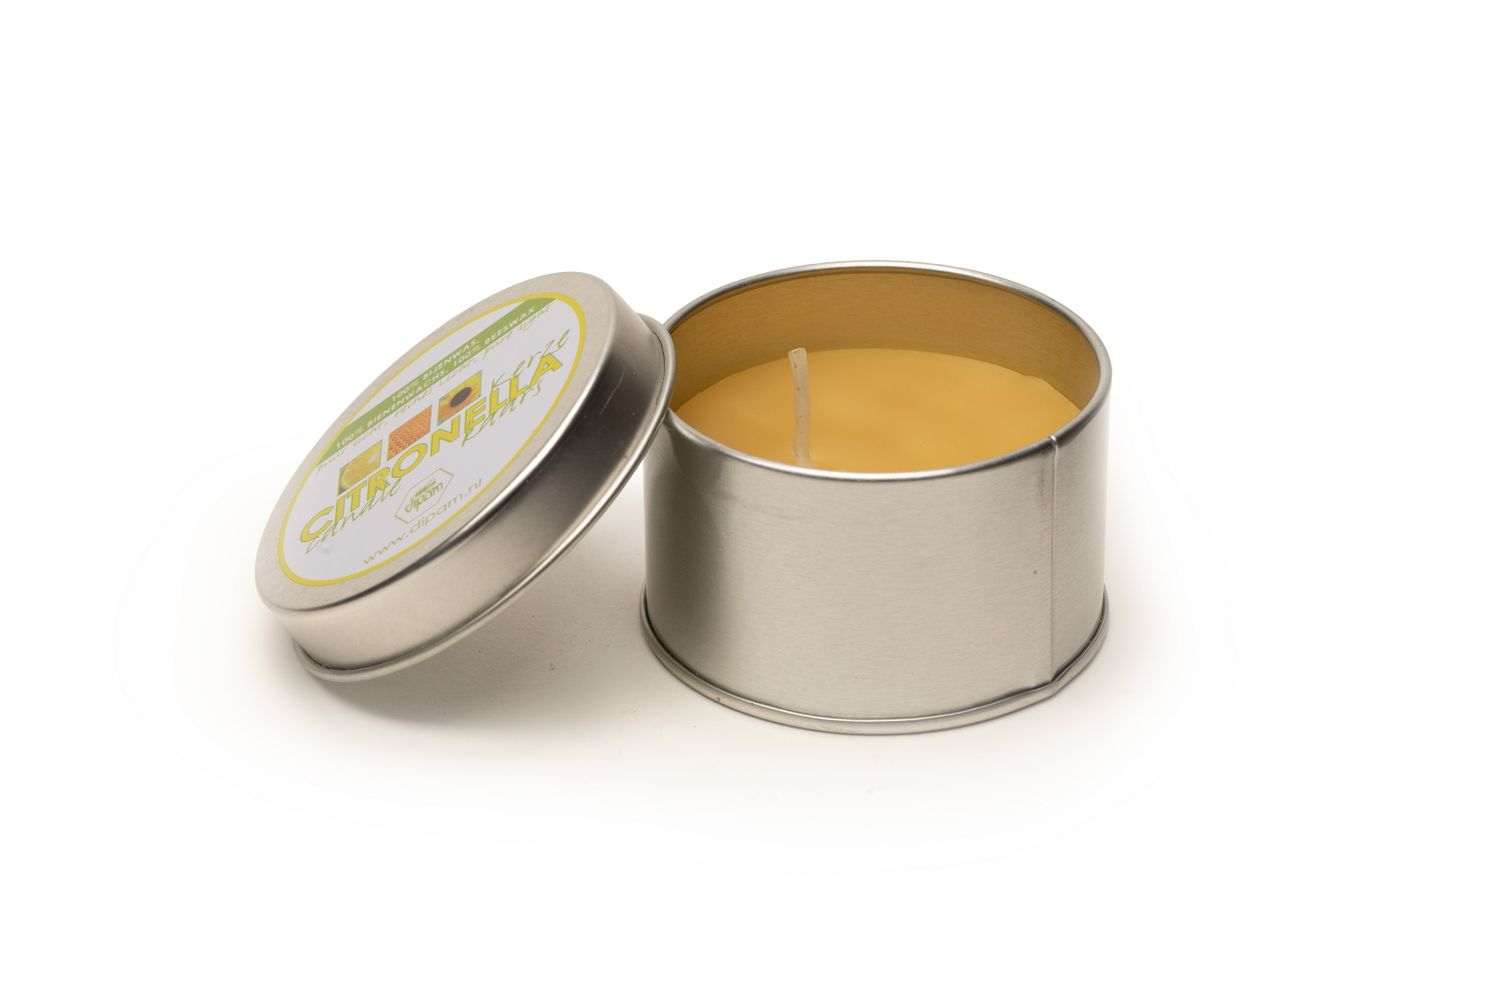 Citronella Beeswax Candle in a Tin